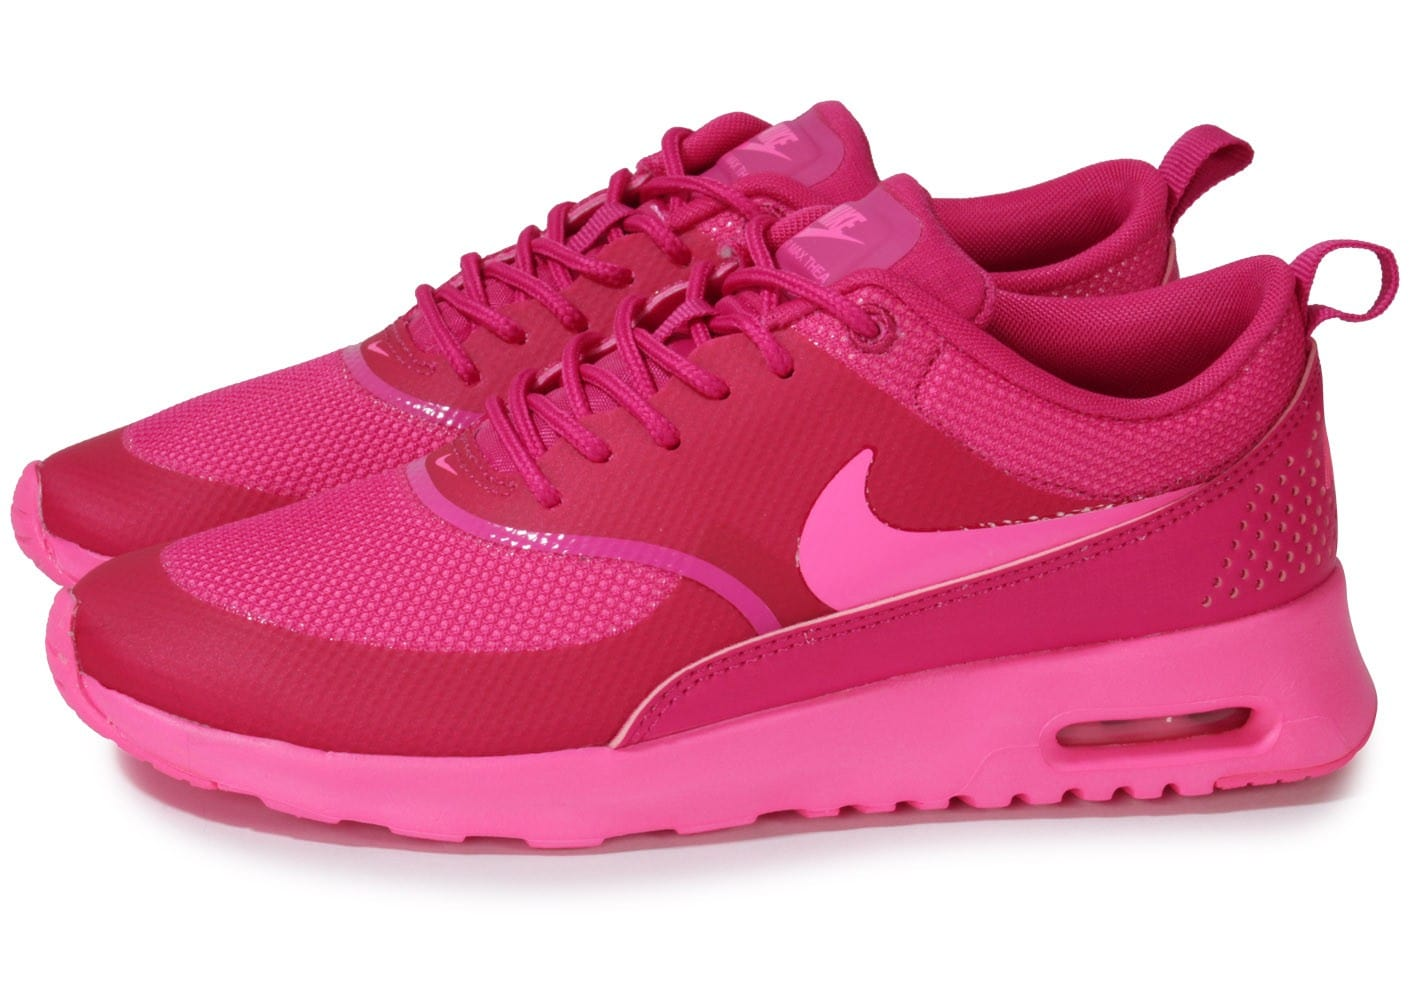 nike air max thea rose chaussures chaussures chausport. Black Bedroom Furniture Sets. Home Design Ideas